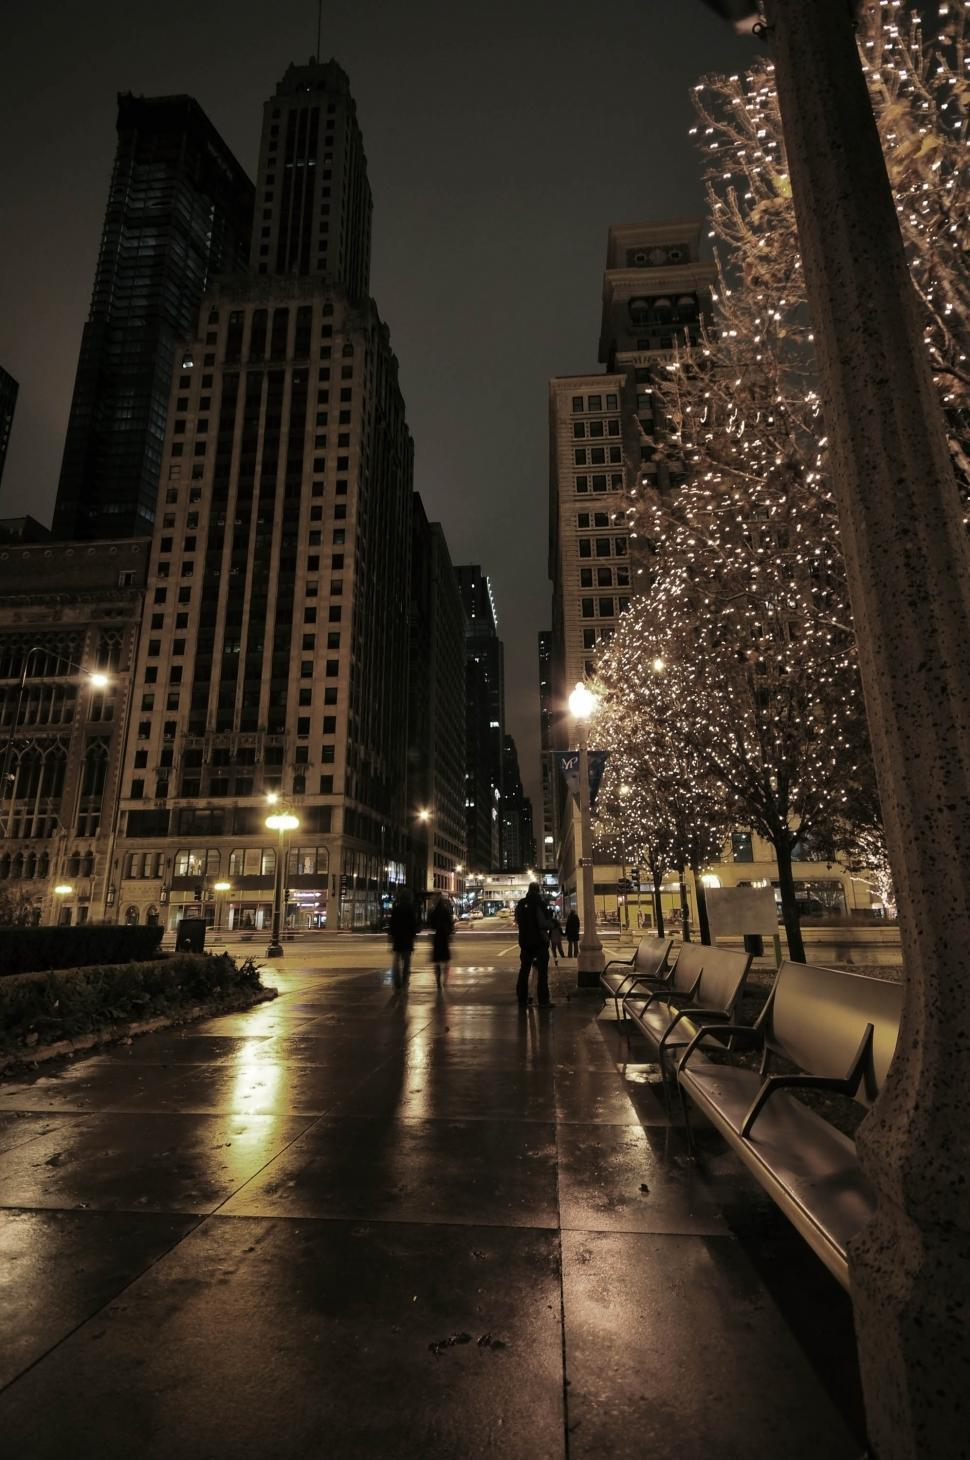 Download Free Stock HD Photo of Chicago sidewalk at night Online